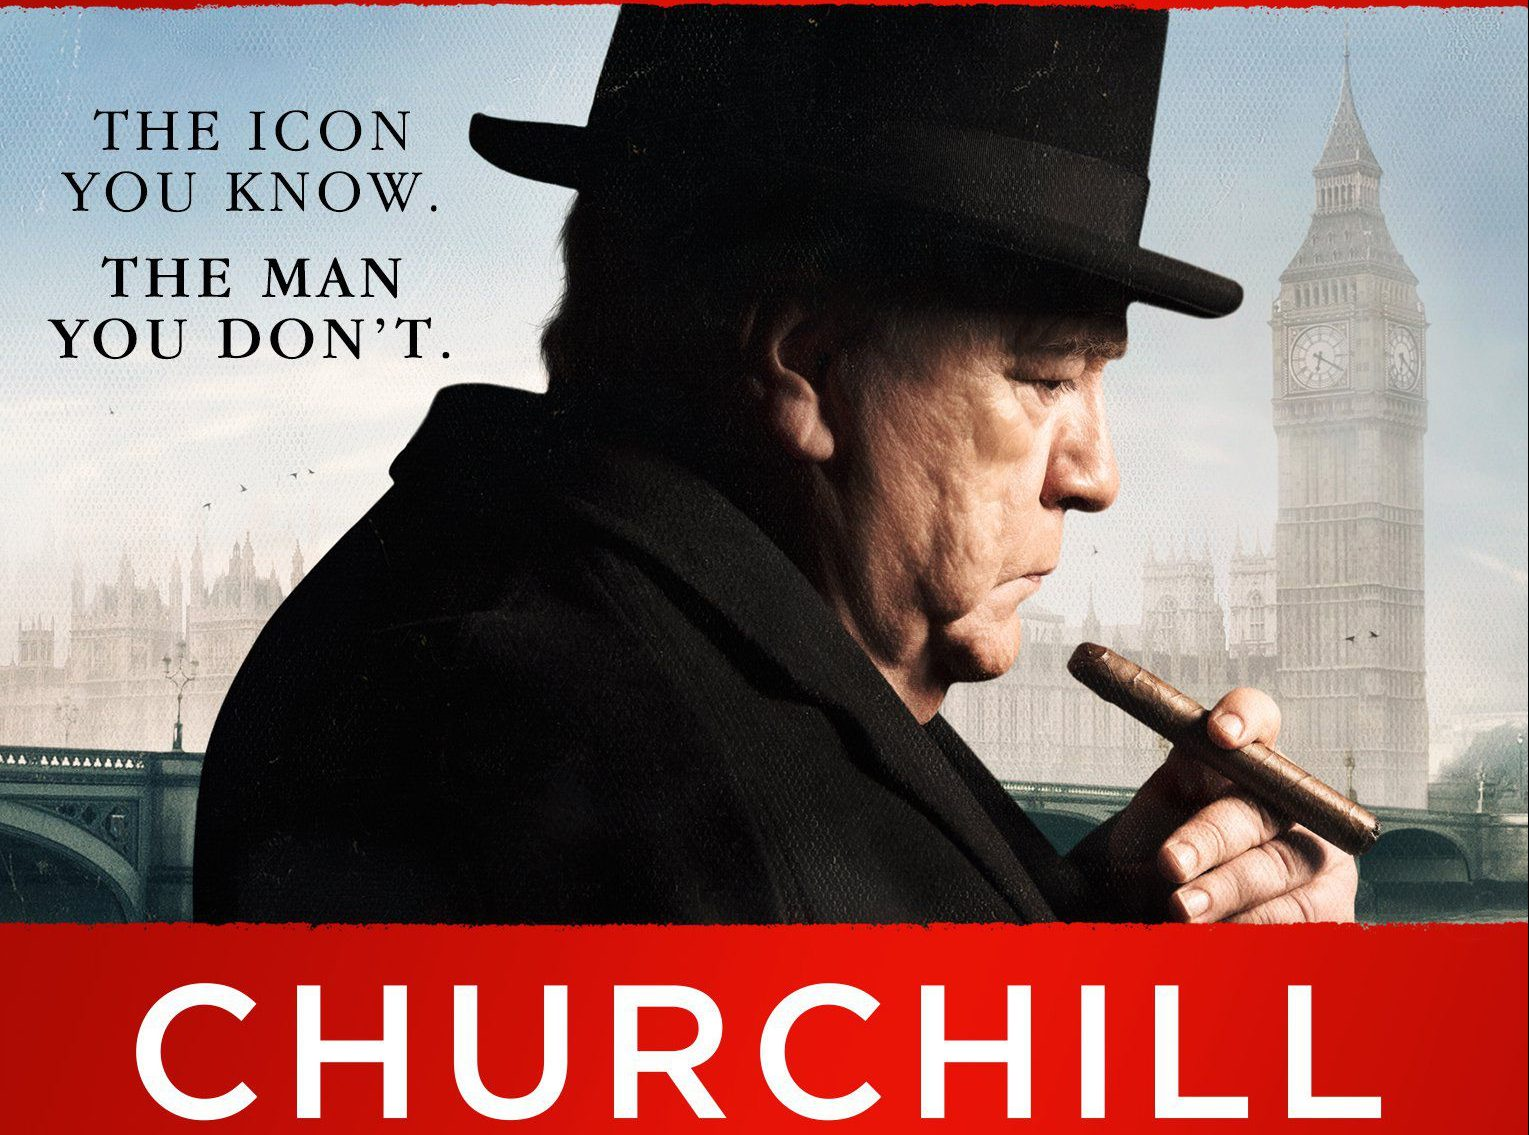 Win a two-night stay at a luxury London hotel frequented by Winston Churchill to celebrate the Churchill DVD release